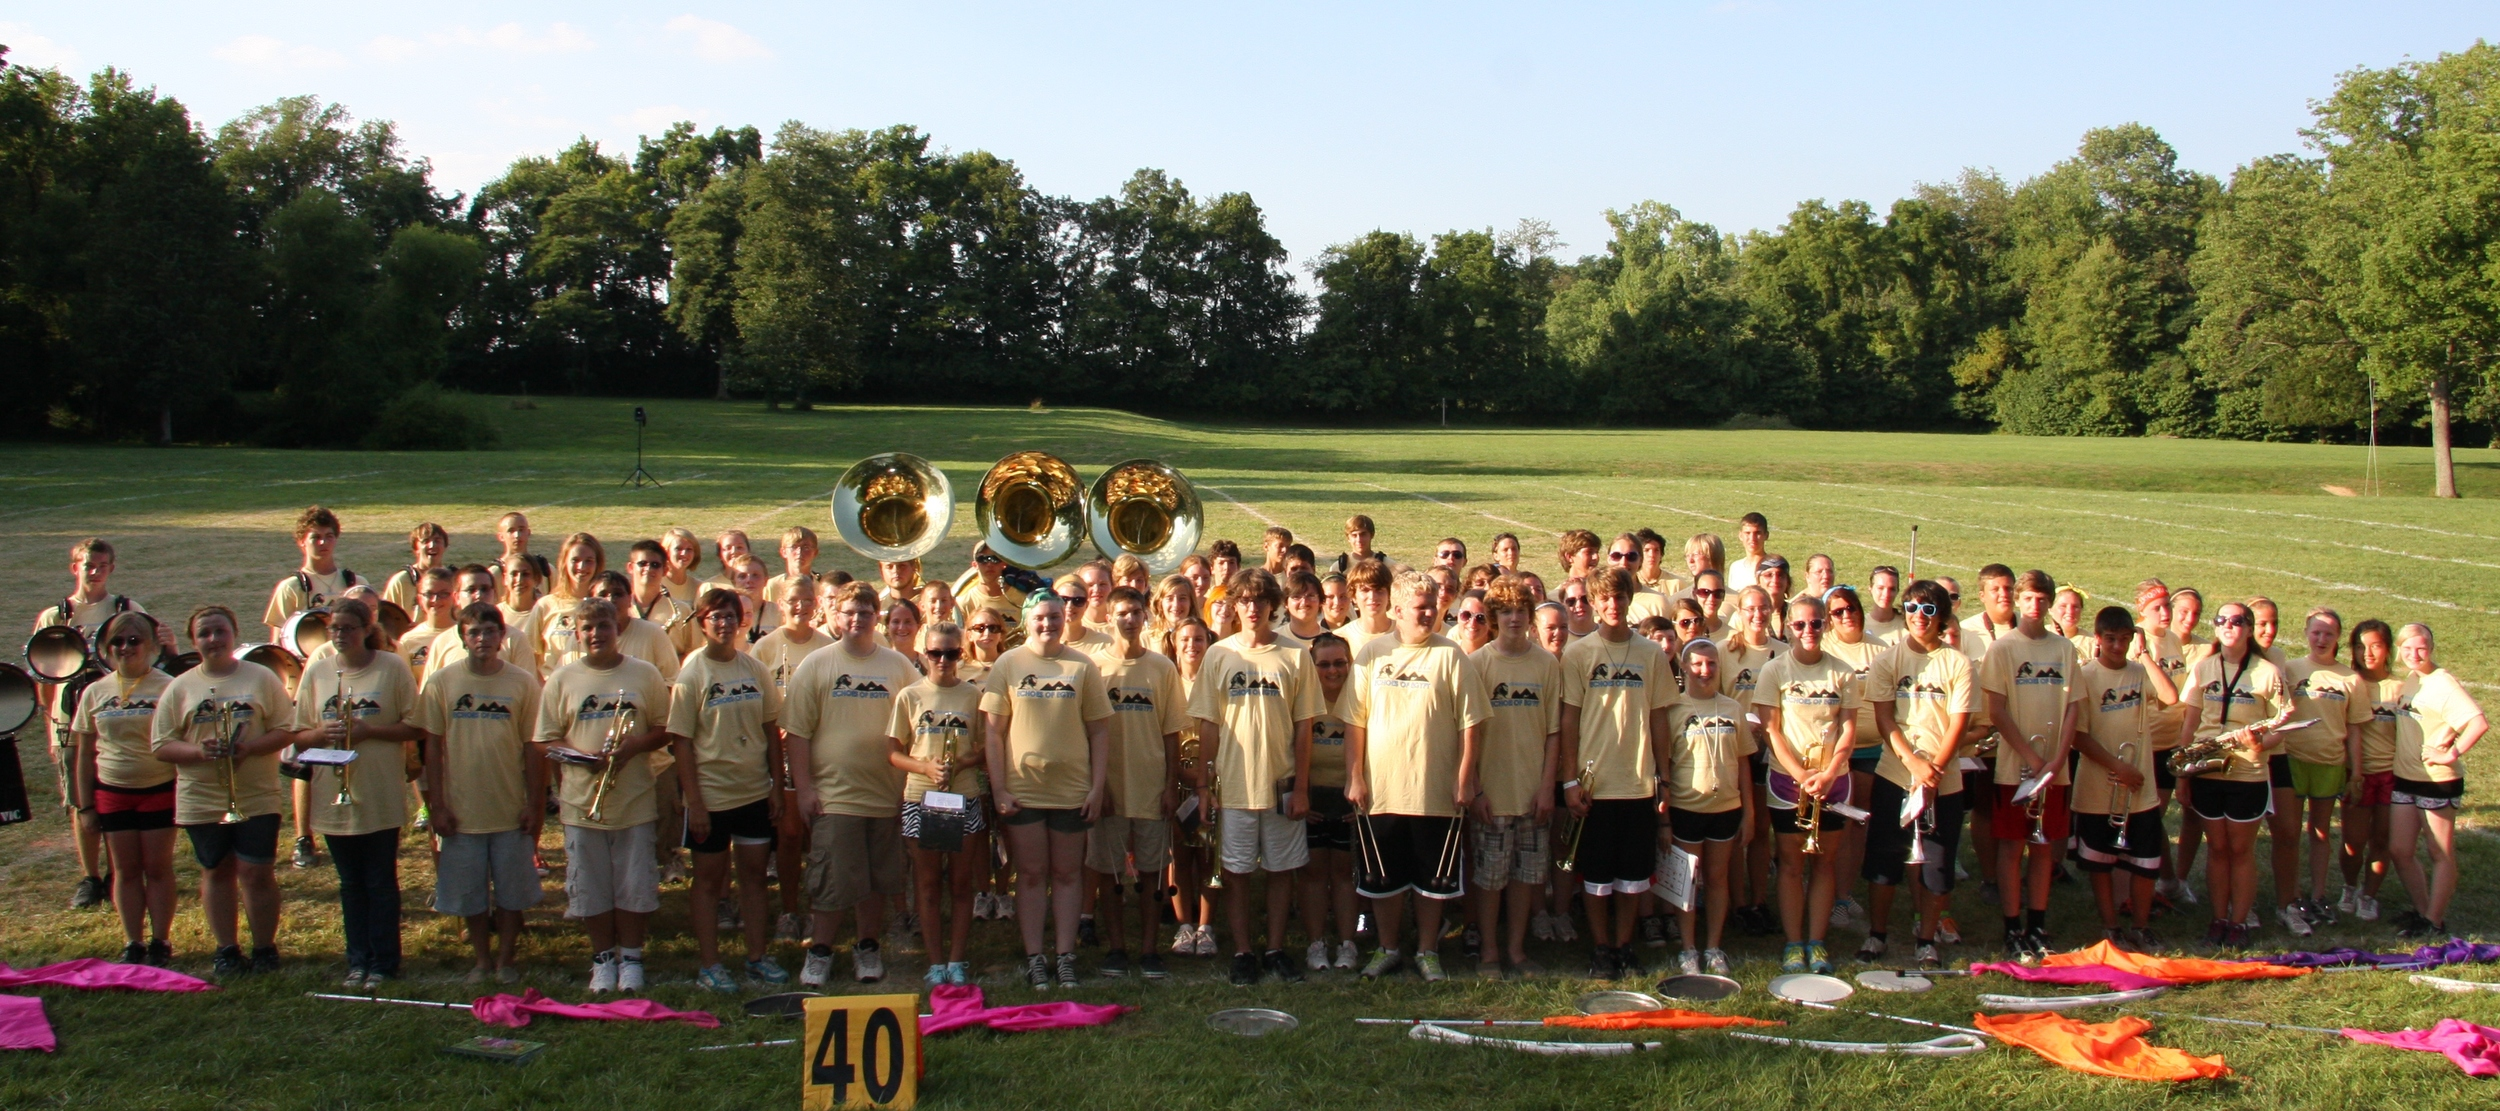 Last Year's (2012) Band Camp Photo    What a Great Group of Students!!